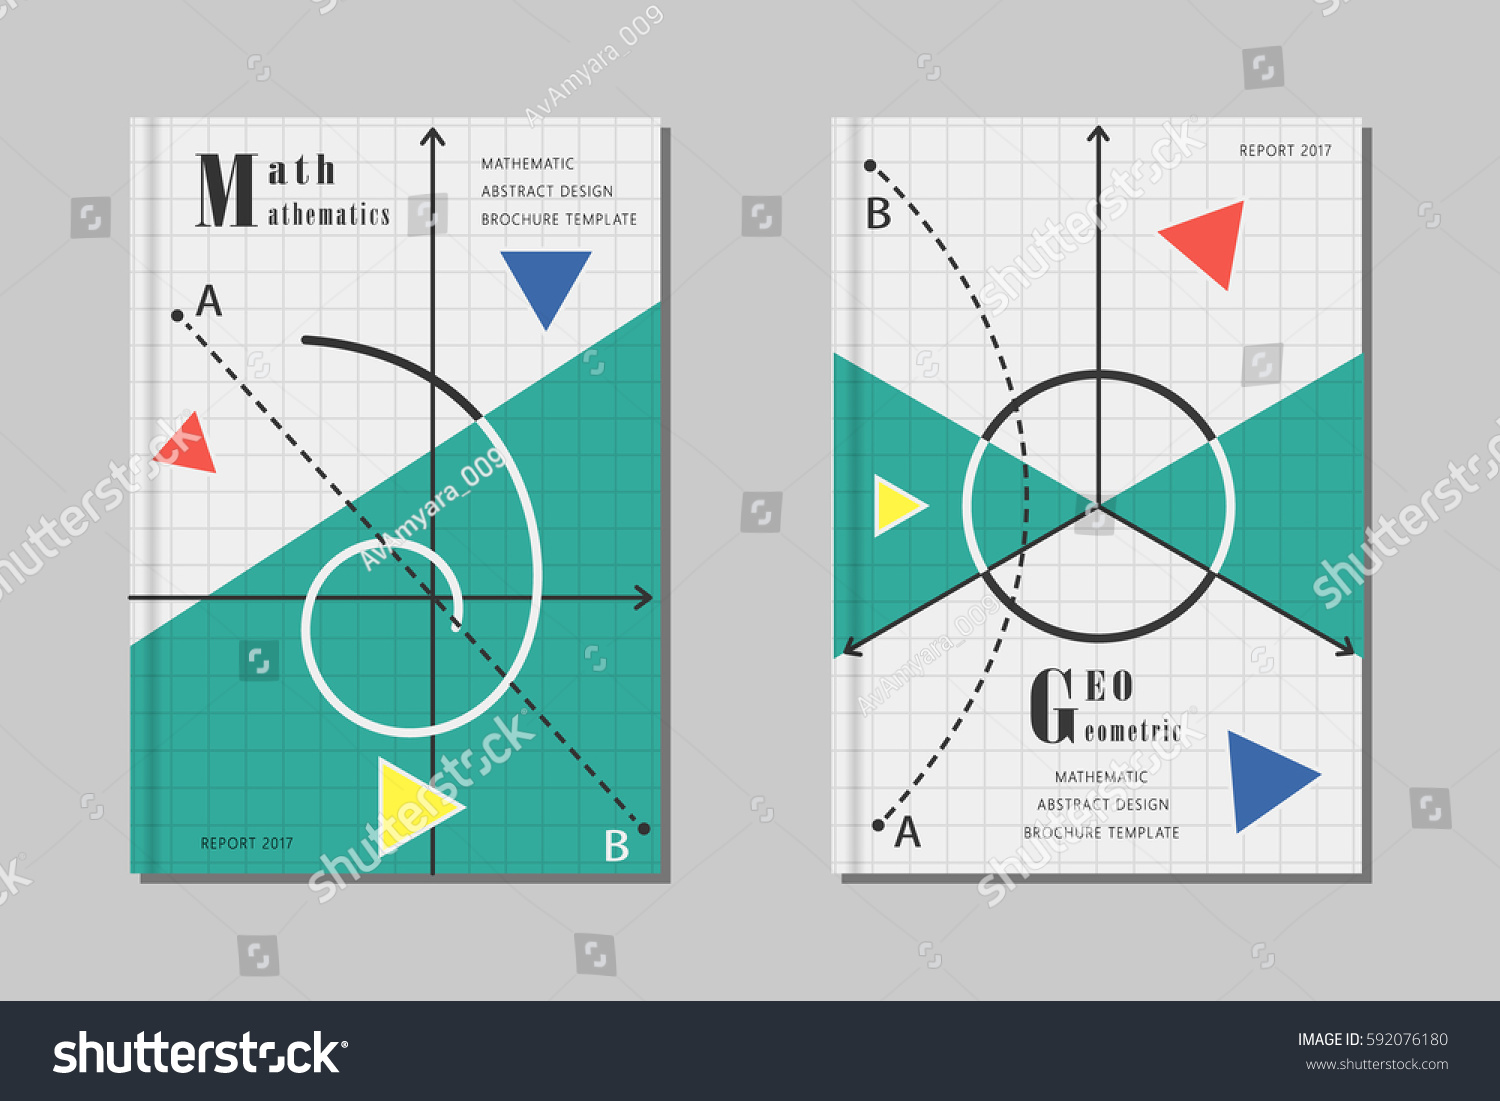 mathematics design abstract geometric shapes and signs creative template for brochure covers posters